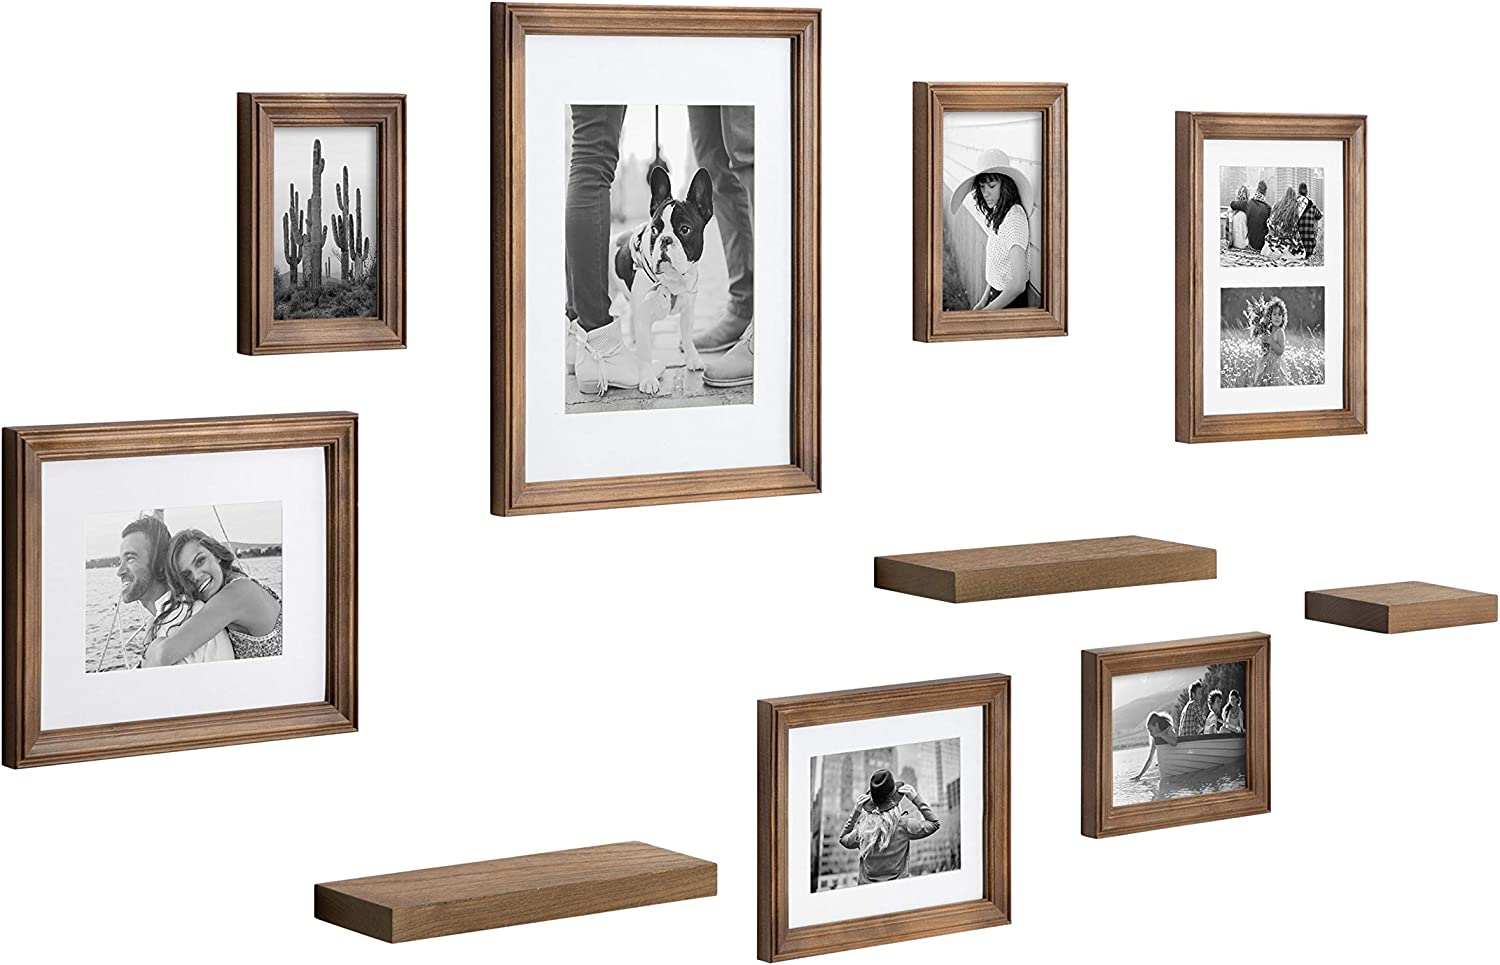 Kate and Laurel Bordeaux Gallery Wall Frame and Shelf Kit, Set of 10, Natural, Assorted Size Frames with Wood Finish and Three Display Shelves Included